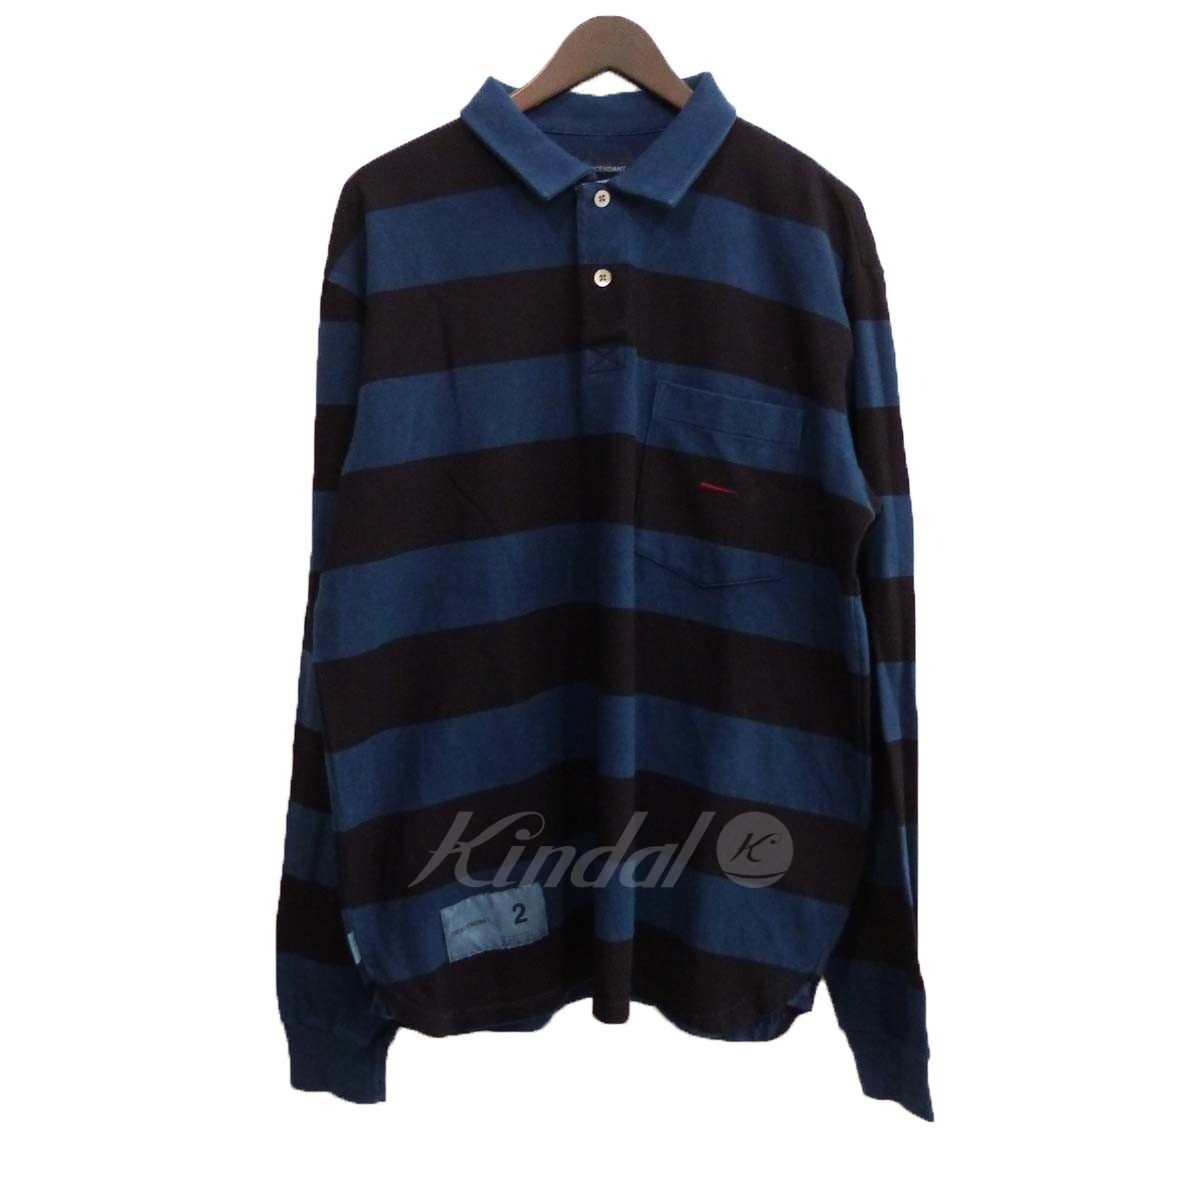 【中古】DESCENDANT×Ron Herman 18S/S 「PLO/POLO LS INDIGO 2」ボーダーポロシャツ 【送料無料】 【094108】 【KIND1550】